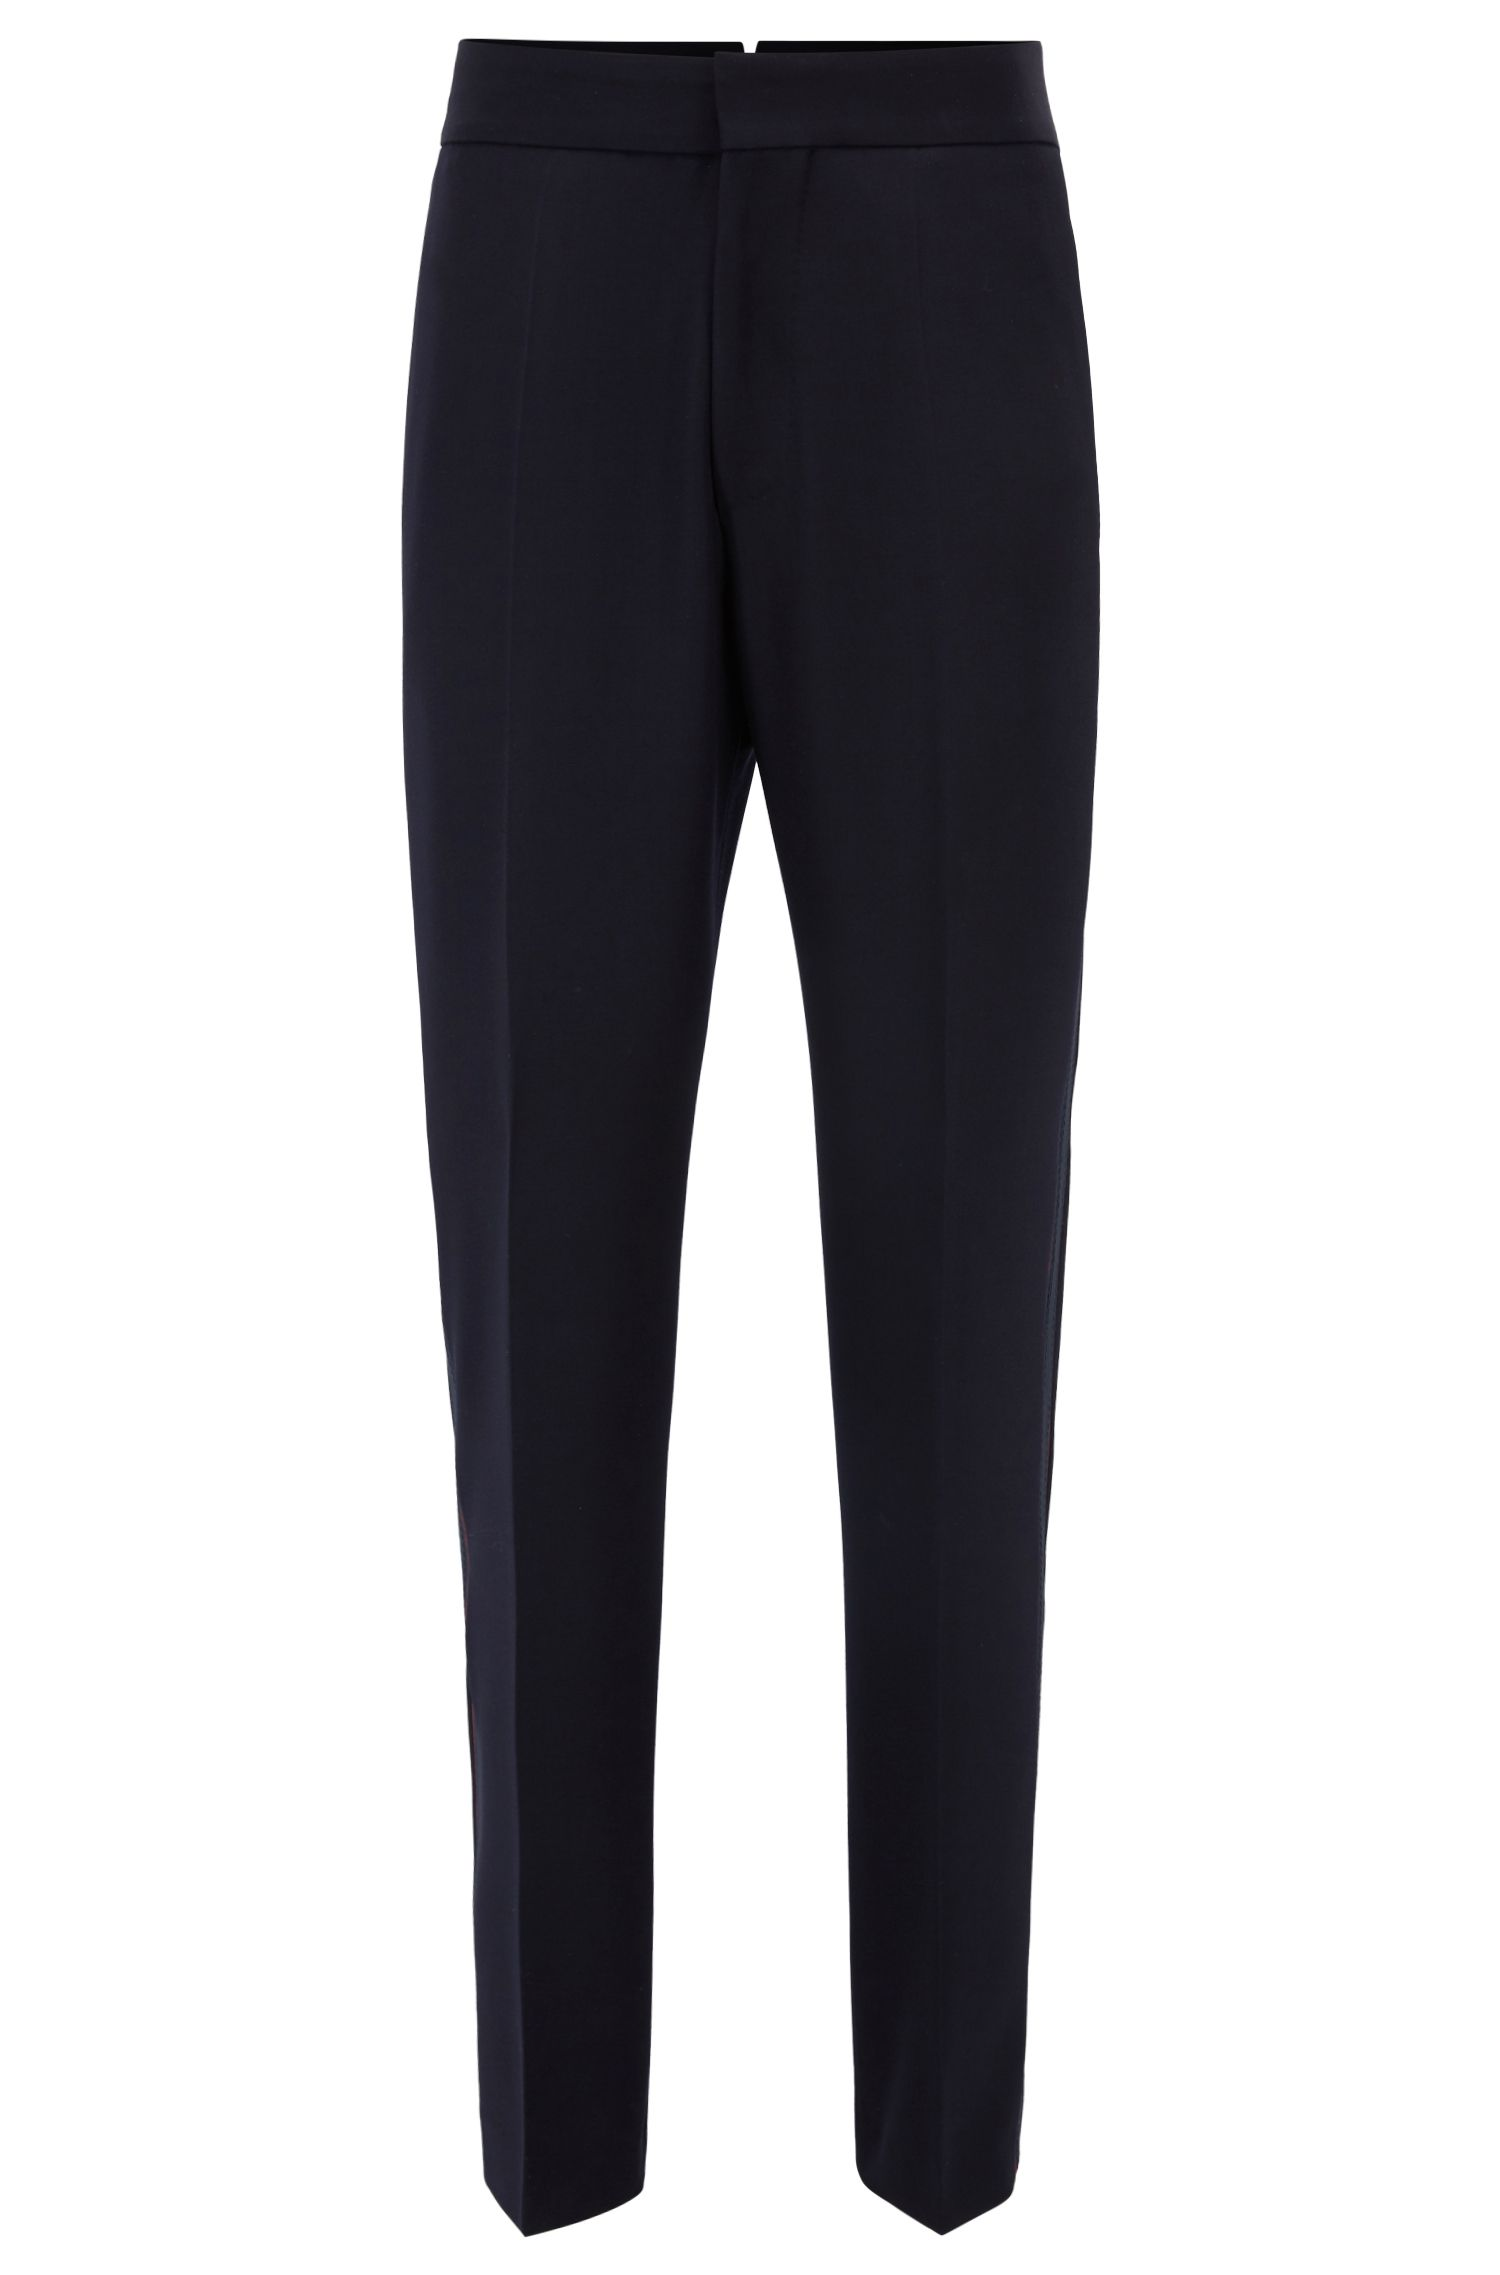 Runway Edition virgin wool trousers with taped side seam | Arden